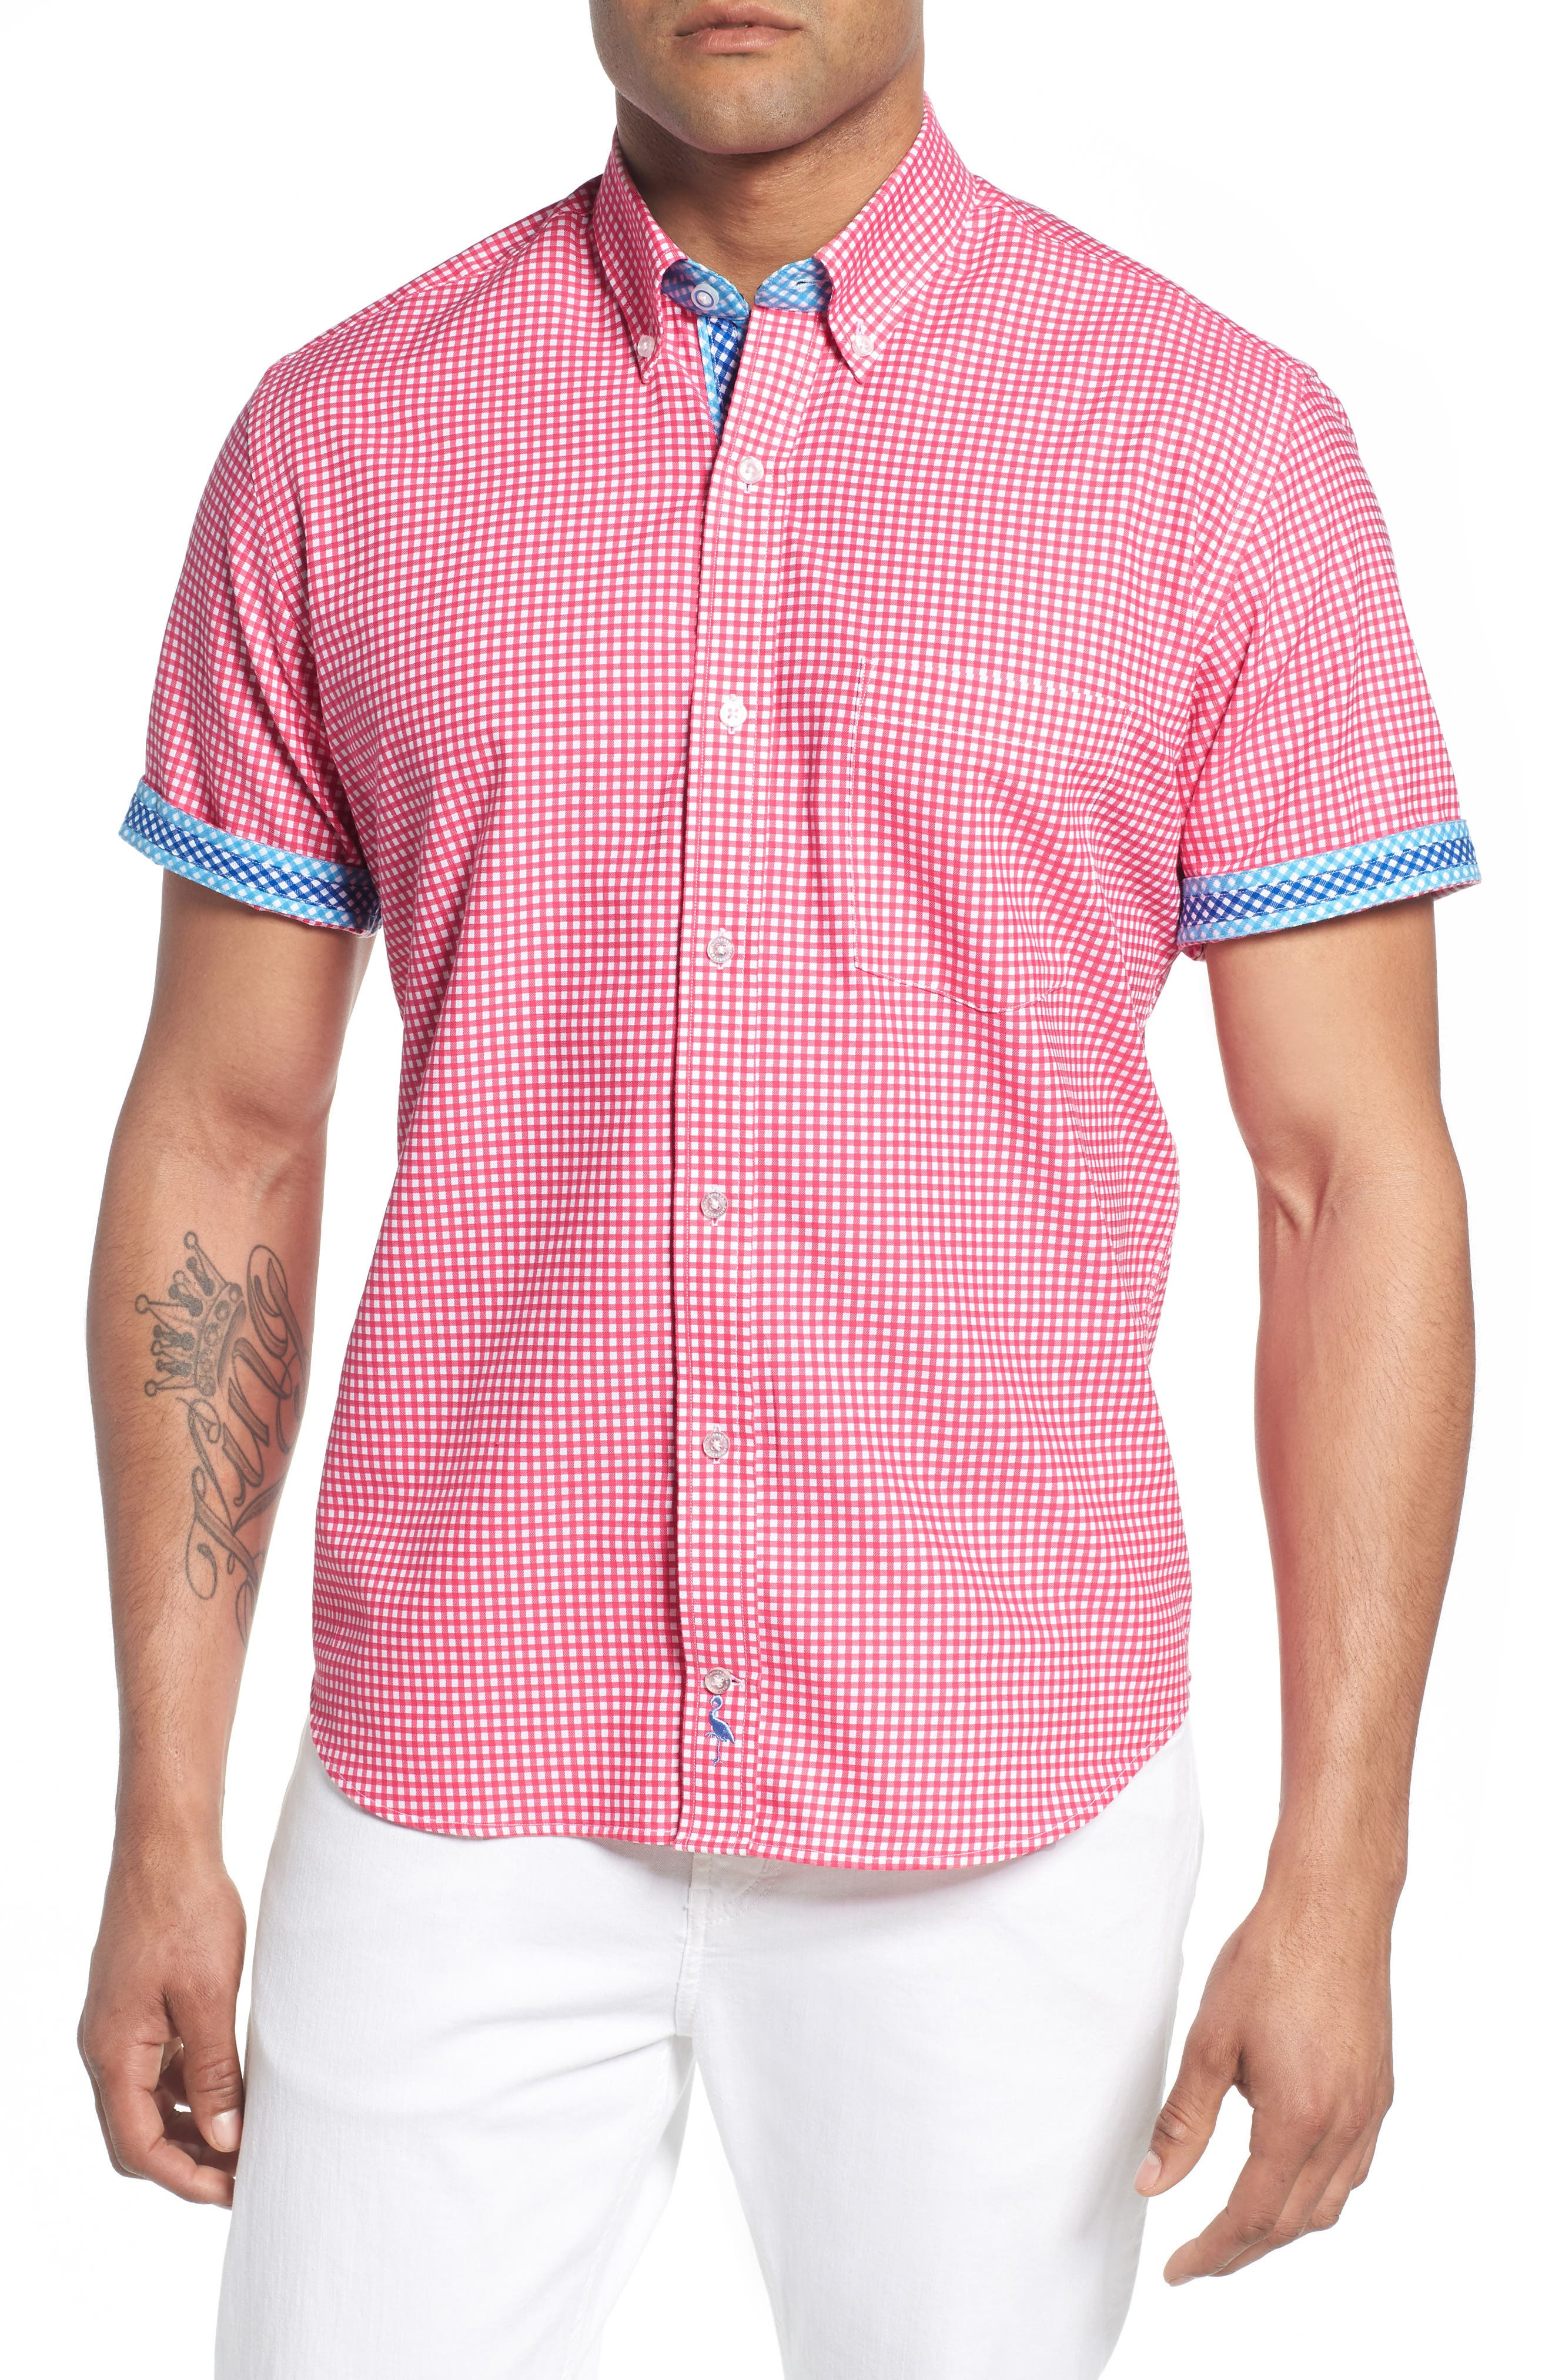 Aden Regular Fit Sport Shirt,                             Alternate thumbnail 4, color,                             950